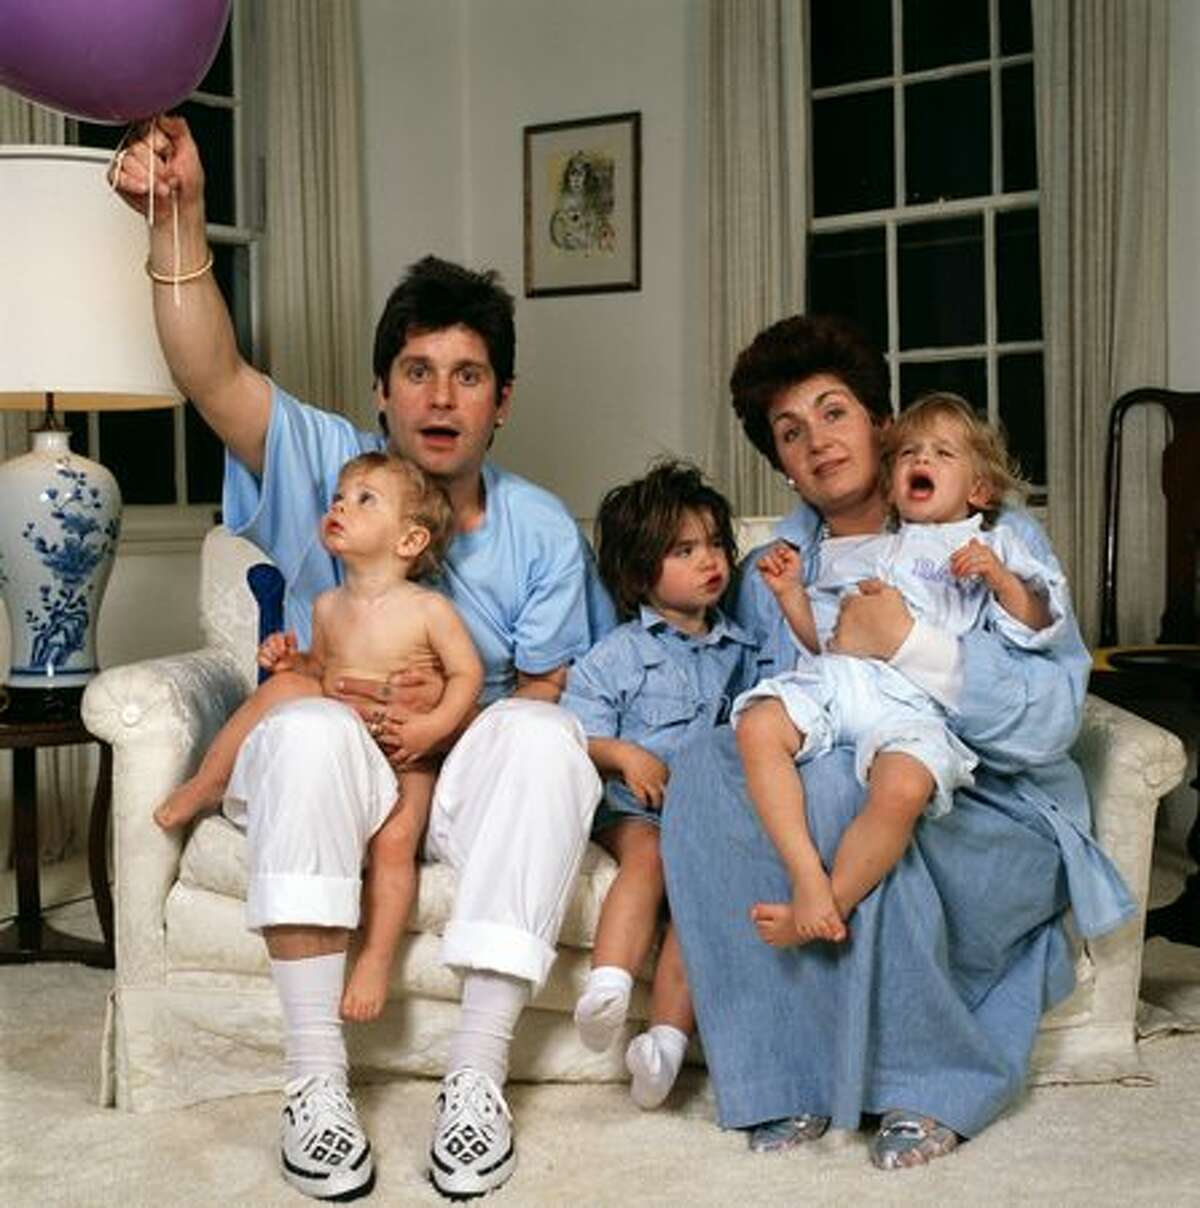 English rock singer Ozzy Osbourne and his wife Sharon and their children Aimee, Kelly and Jack, 1987,